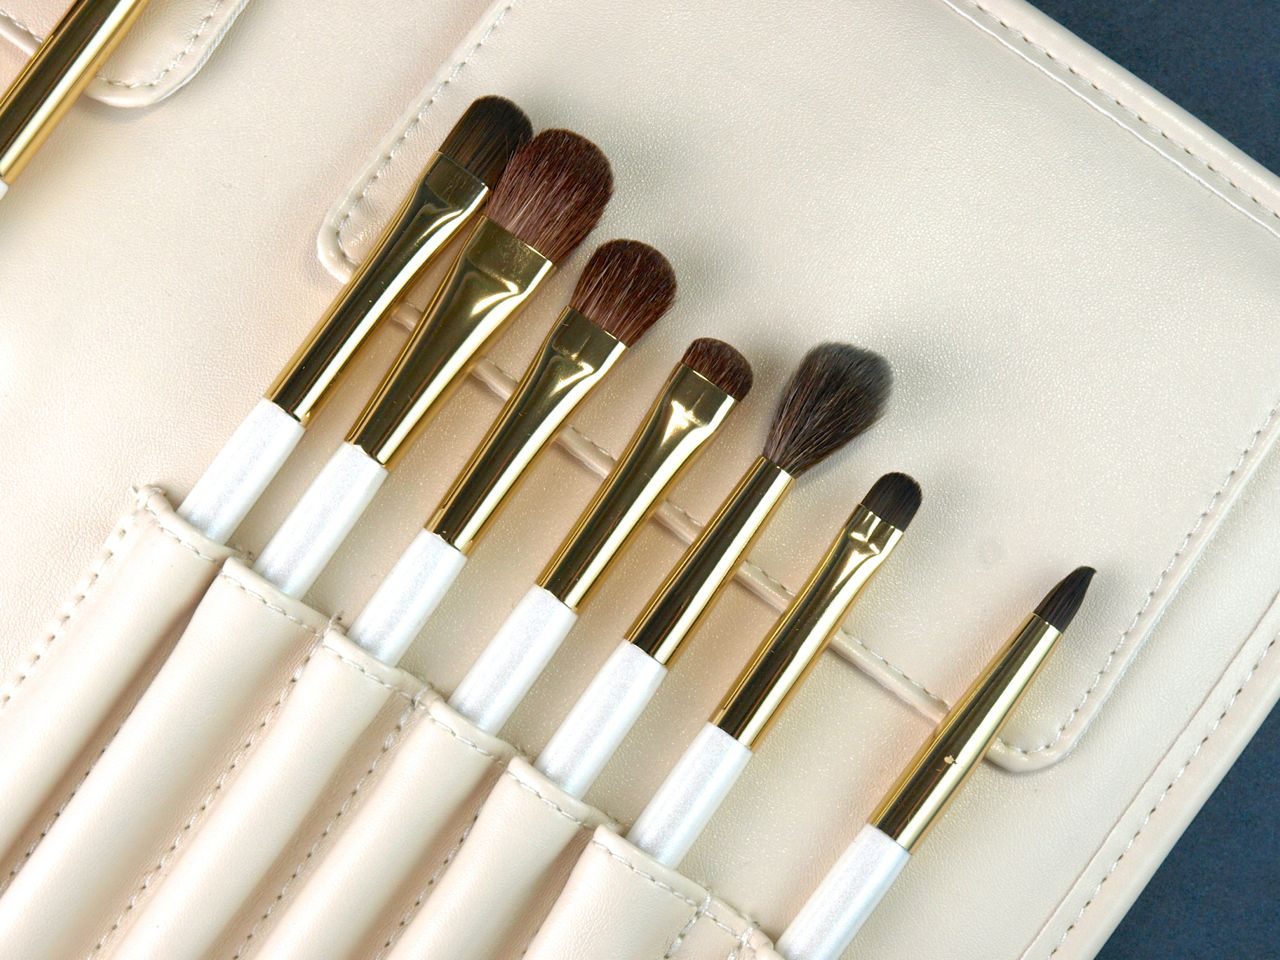 PRO Bent Liner Brush #23 by Sephora Collection #9